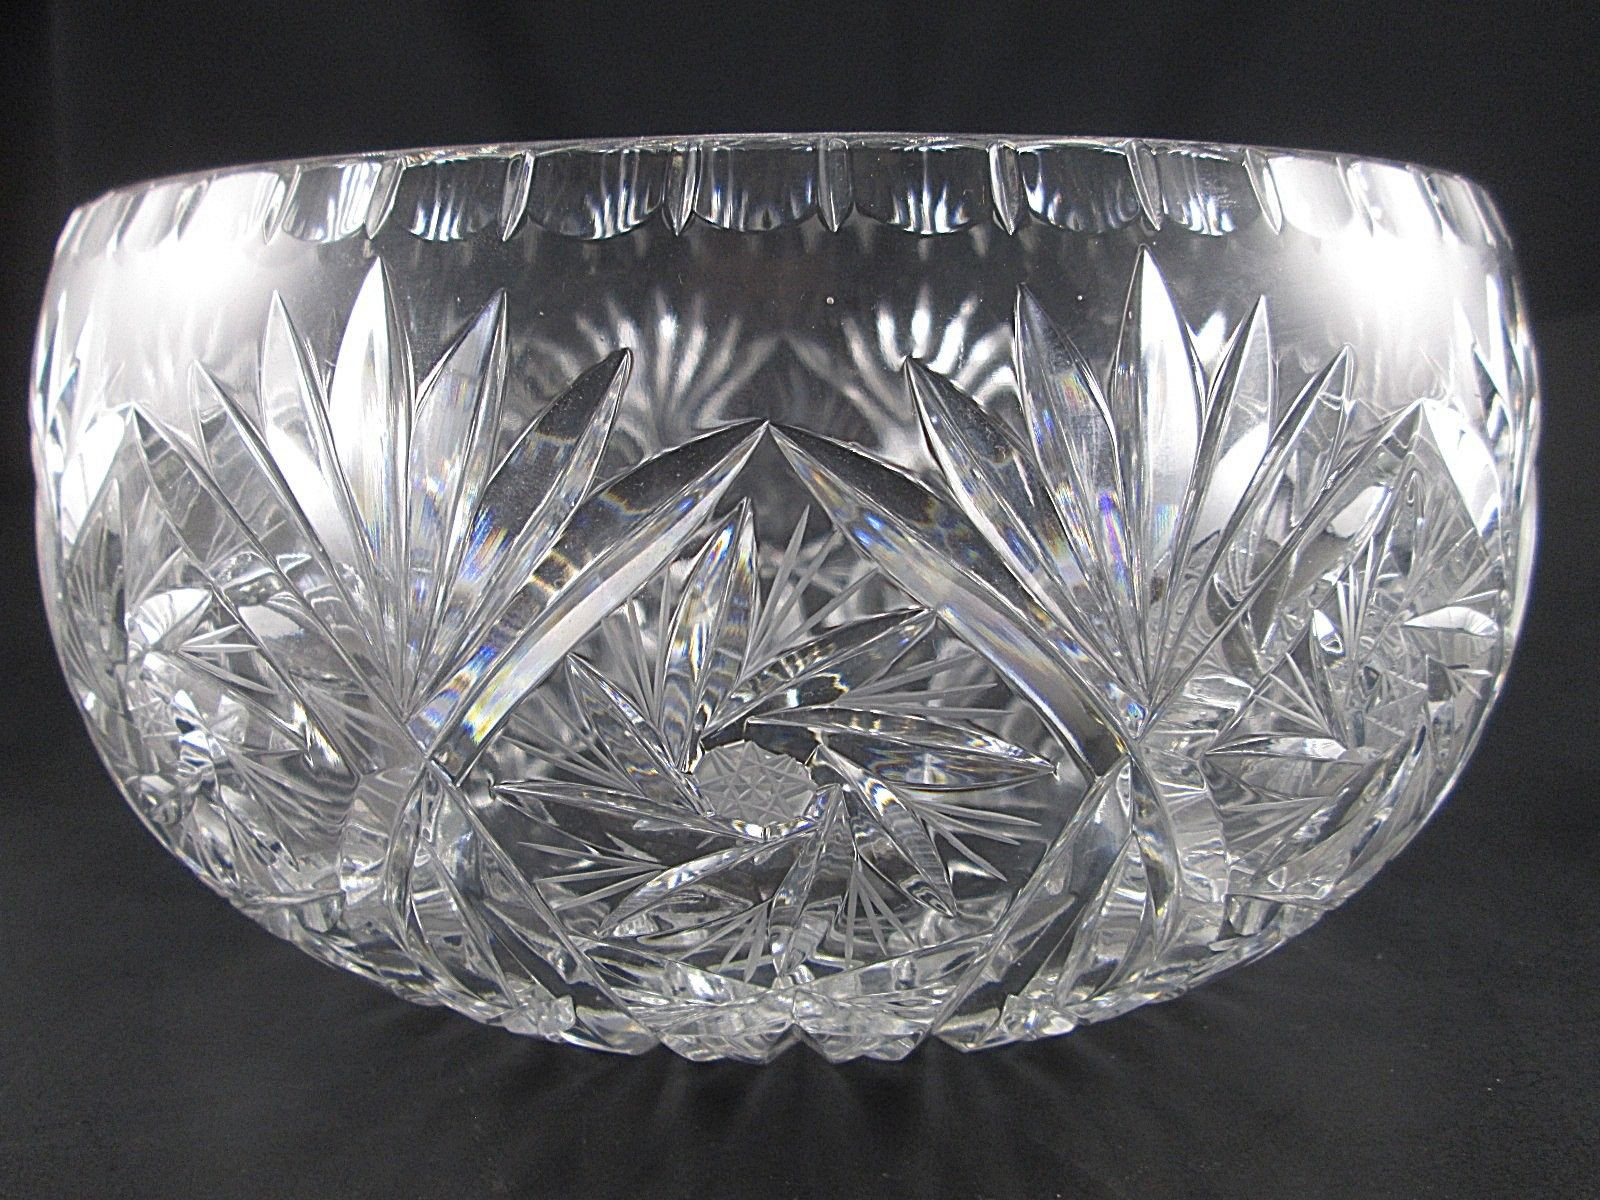 polonia lead crystal vase of large polonia poland lead crystal fanpinwheel star serving bowl with regard to 1 of 4only 1 available